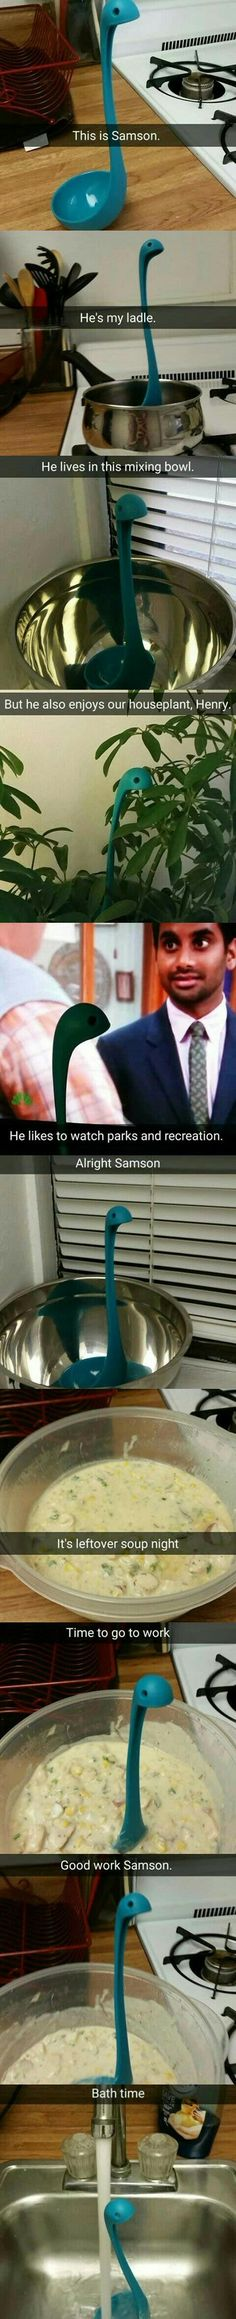 Samson the ladle - 9GAG<<It's a blue version of the Nessy ladle. It's so cute